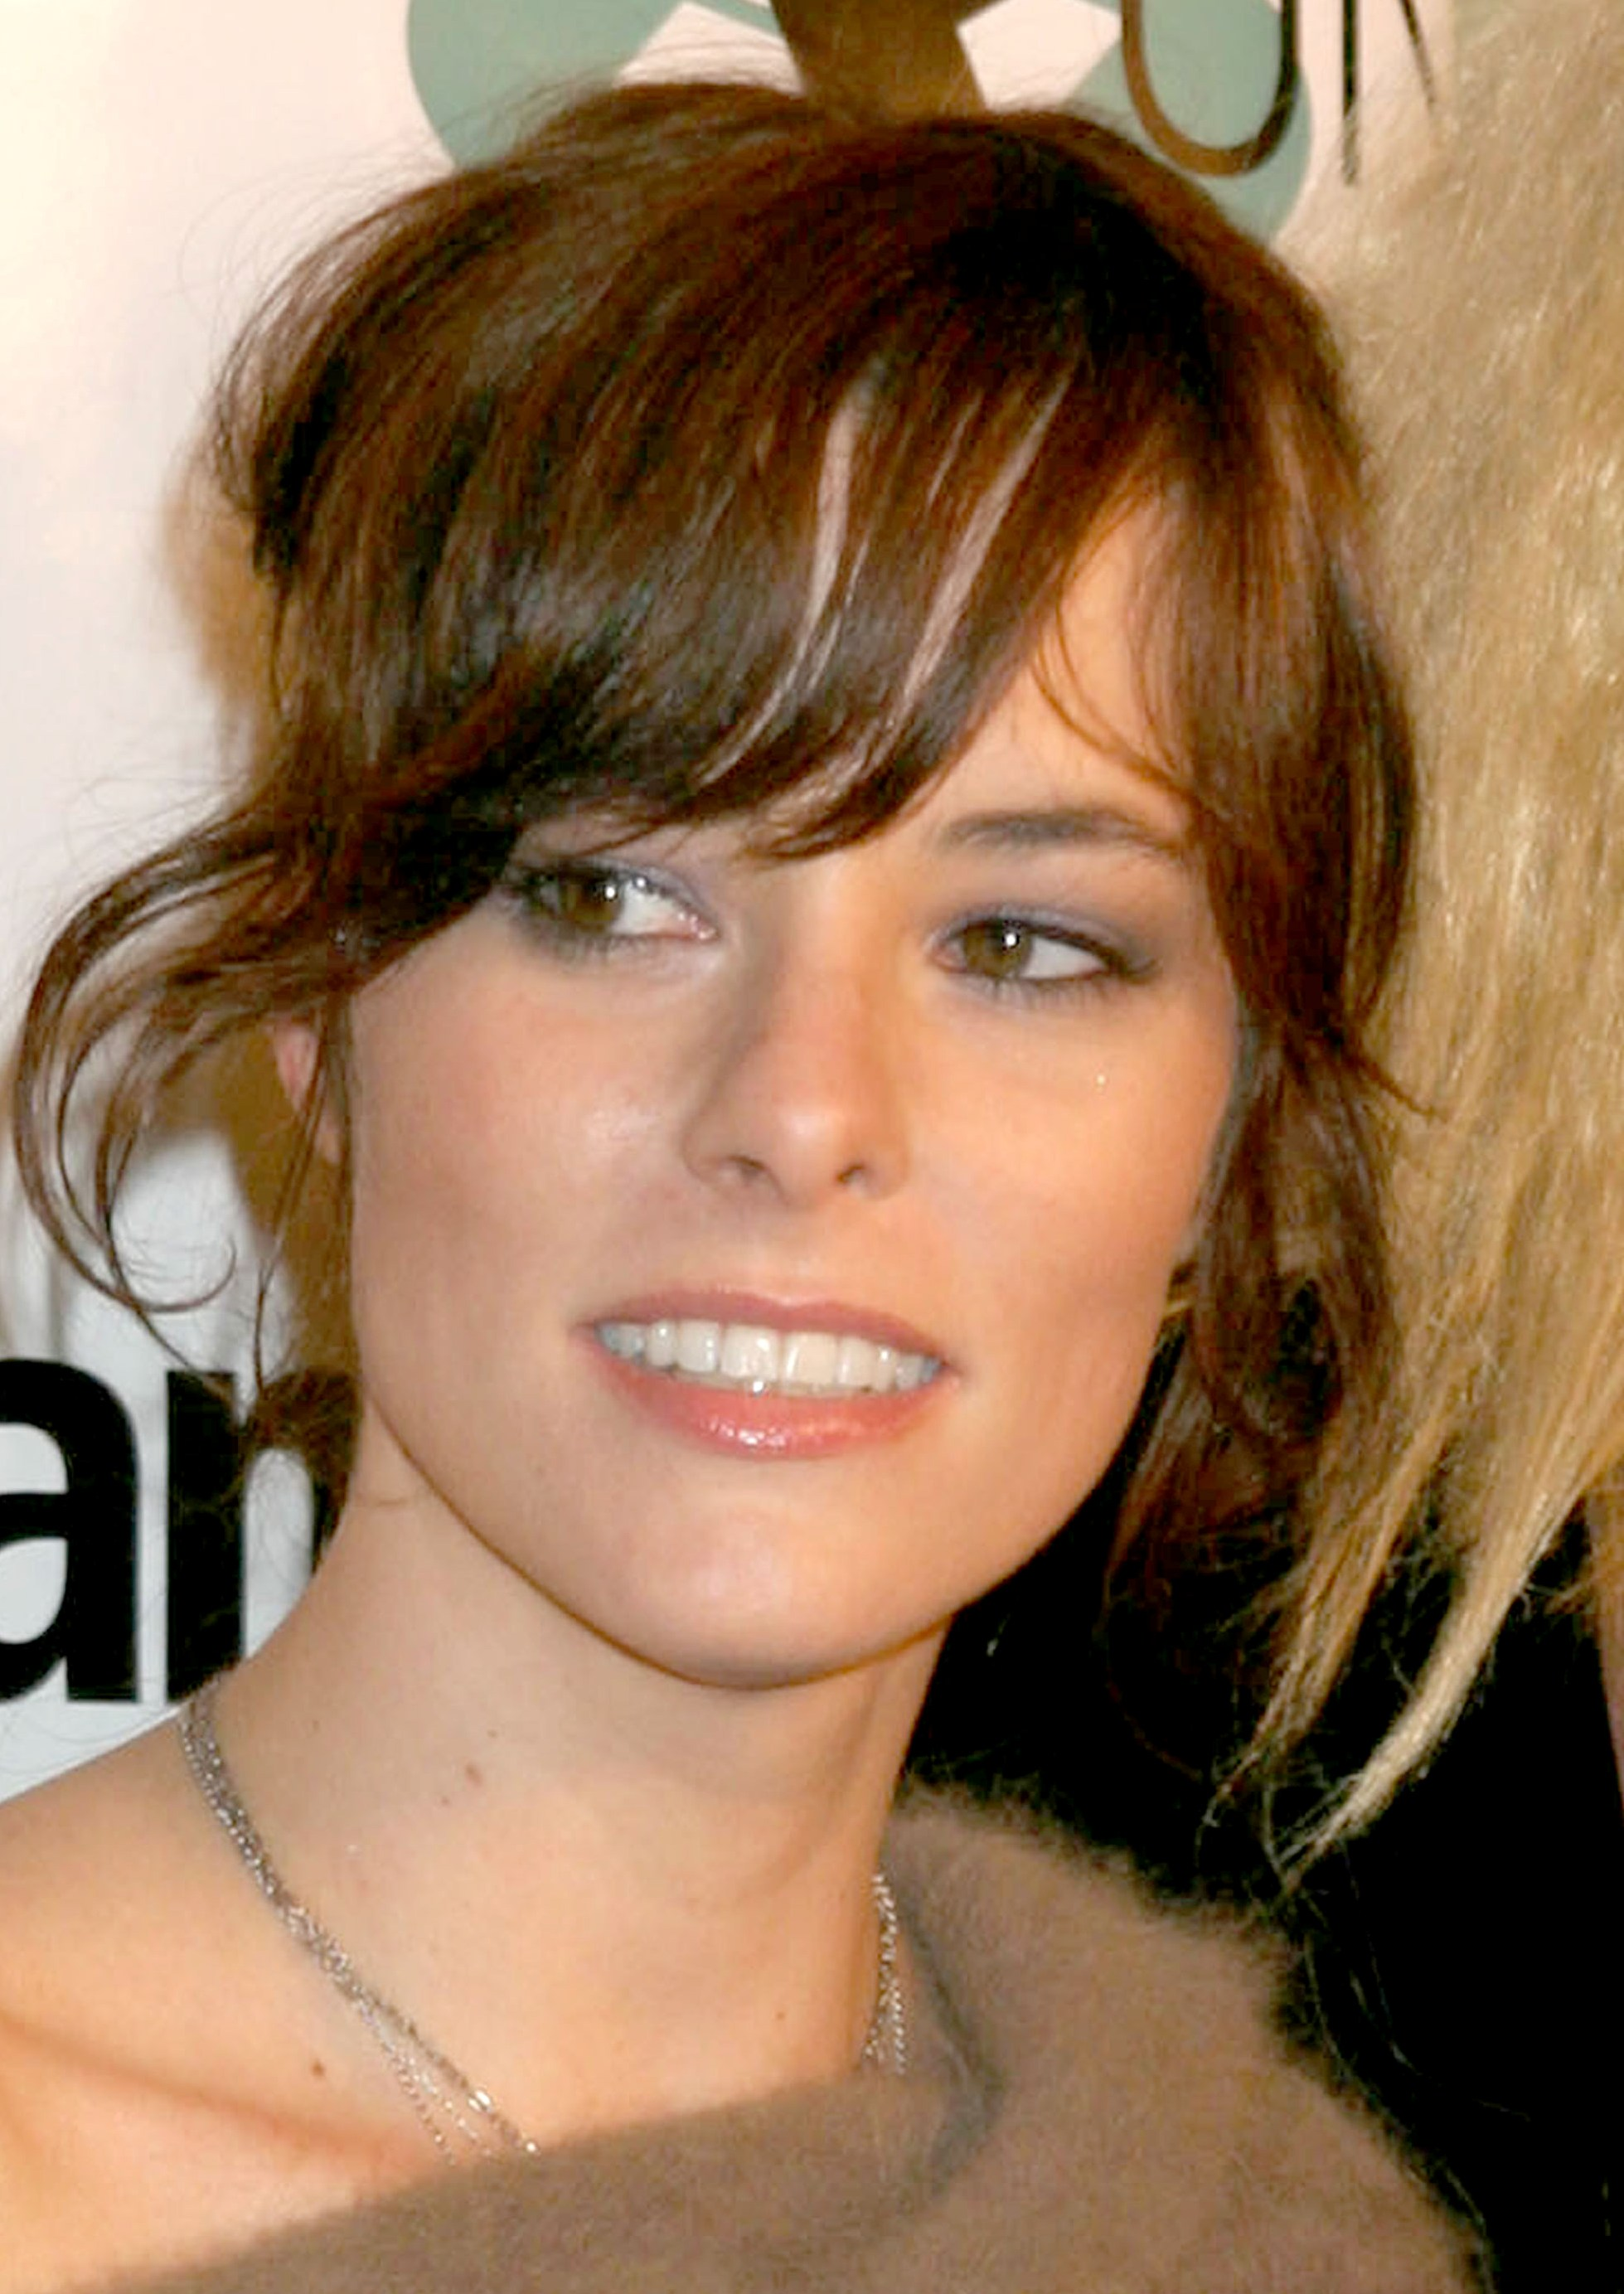 parker posey photo 11 of 21 pics wallpaper photo